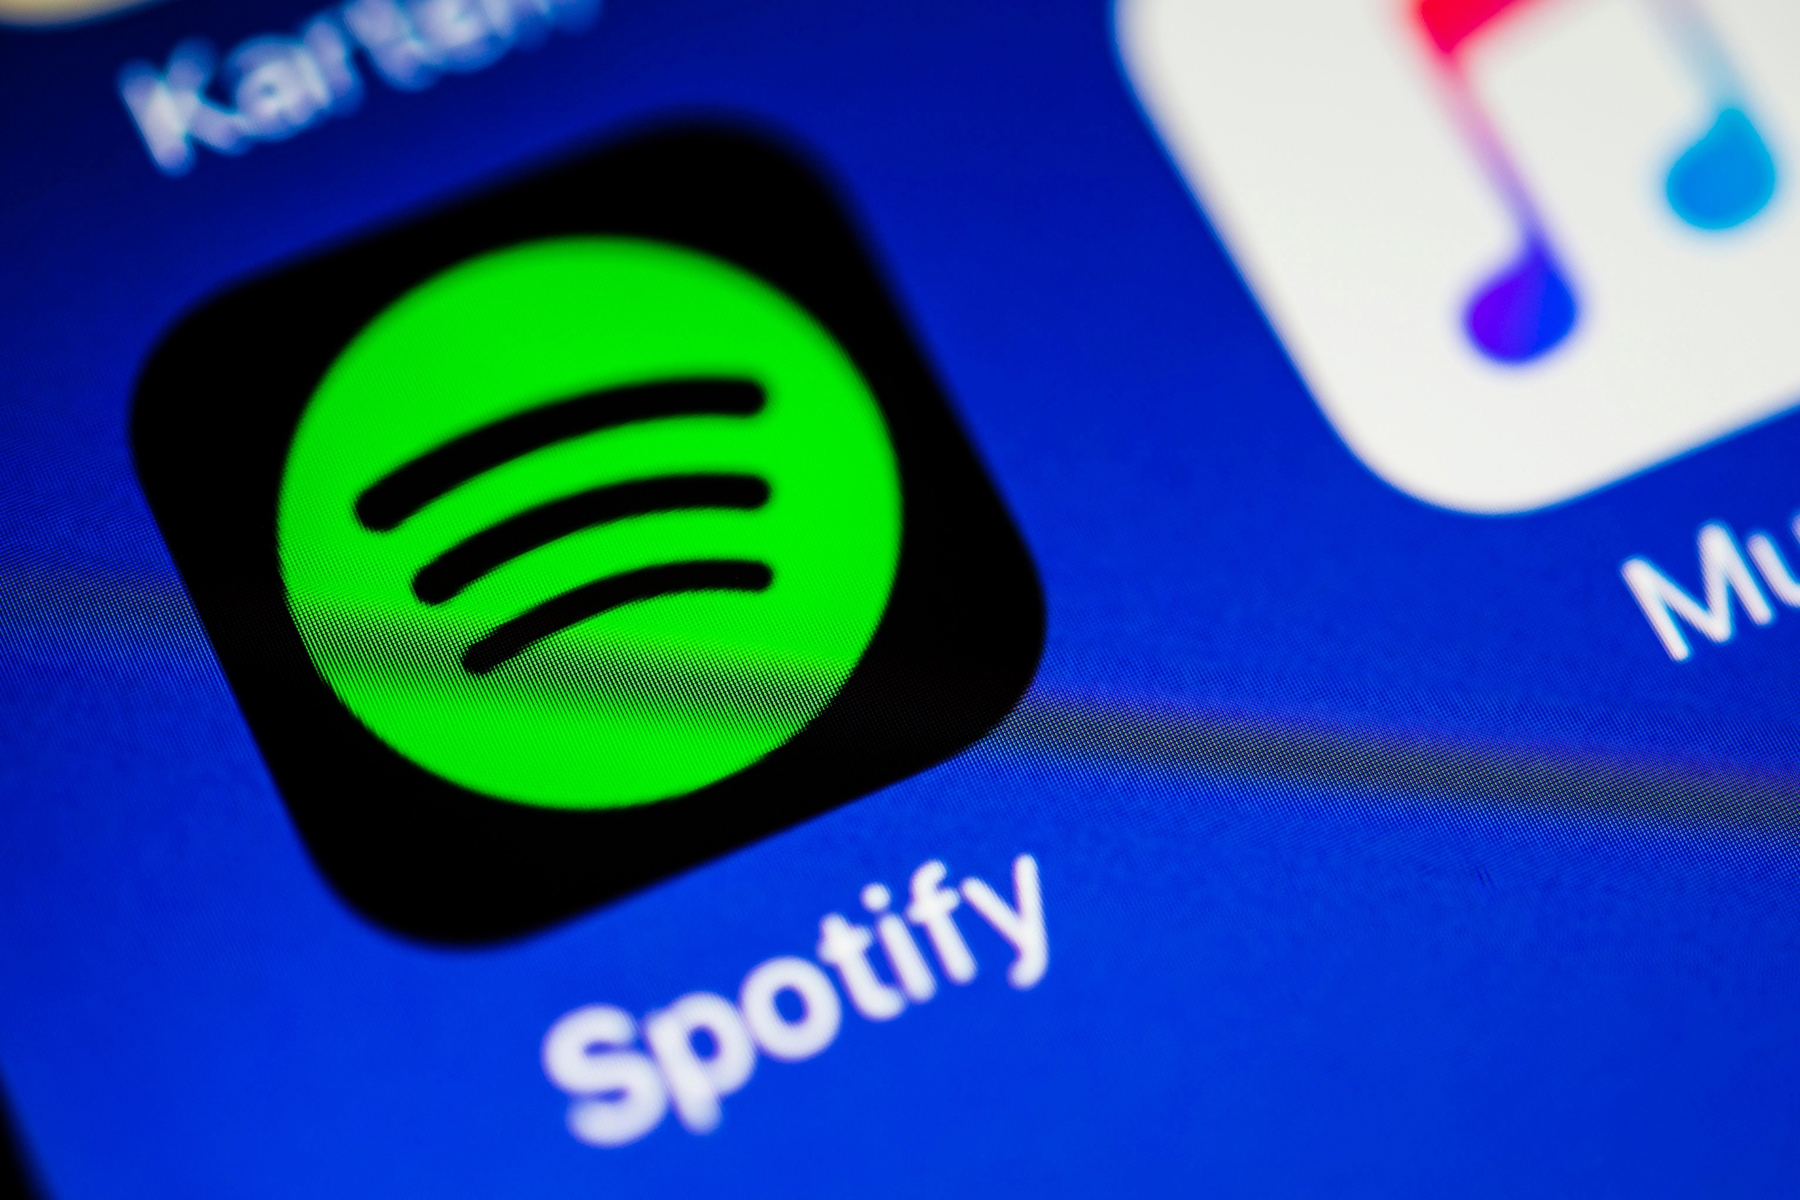 'Spotify Teardown' Is the Book Spotify Didn't Want Published